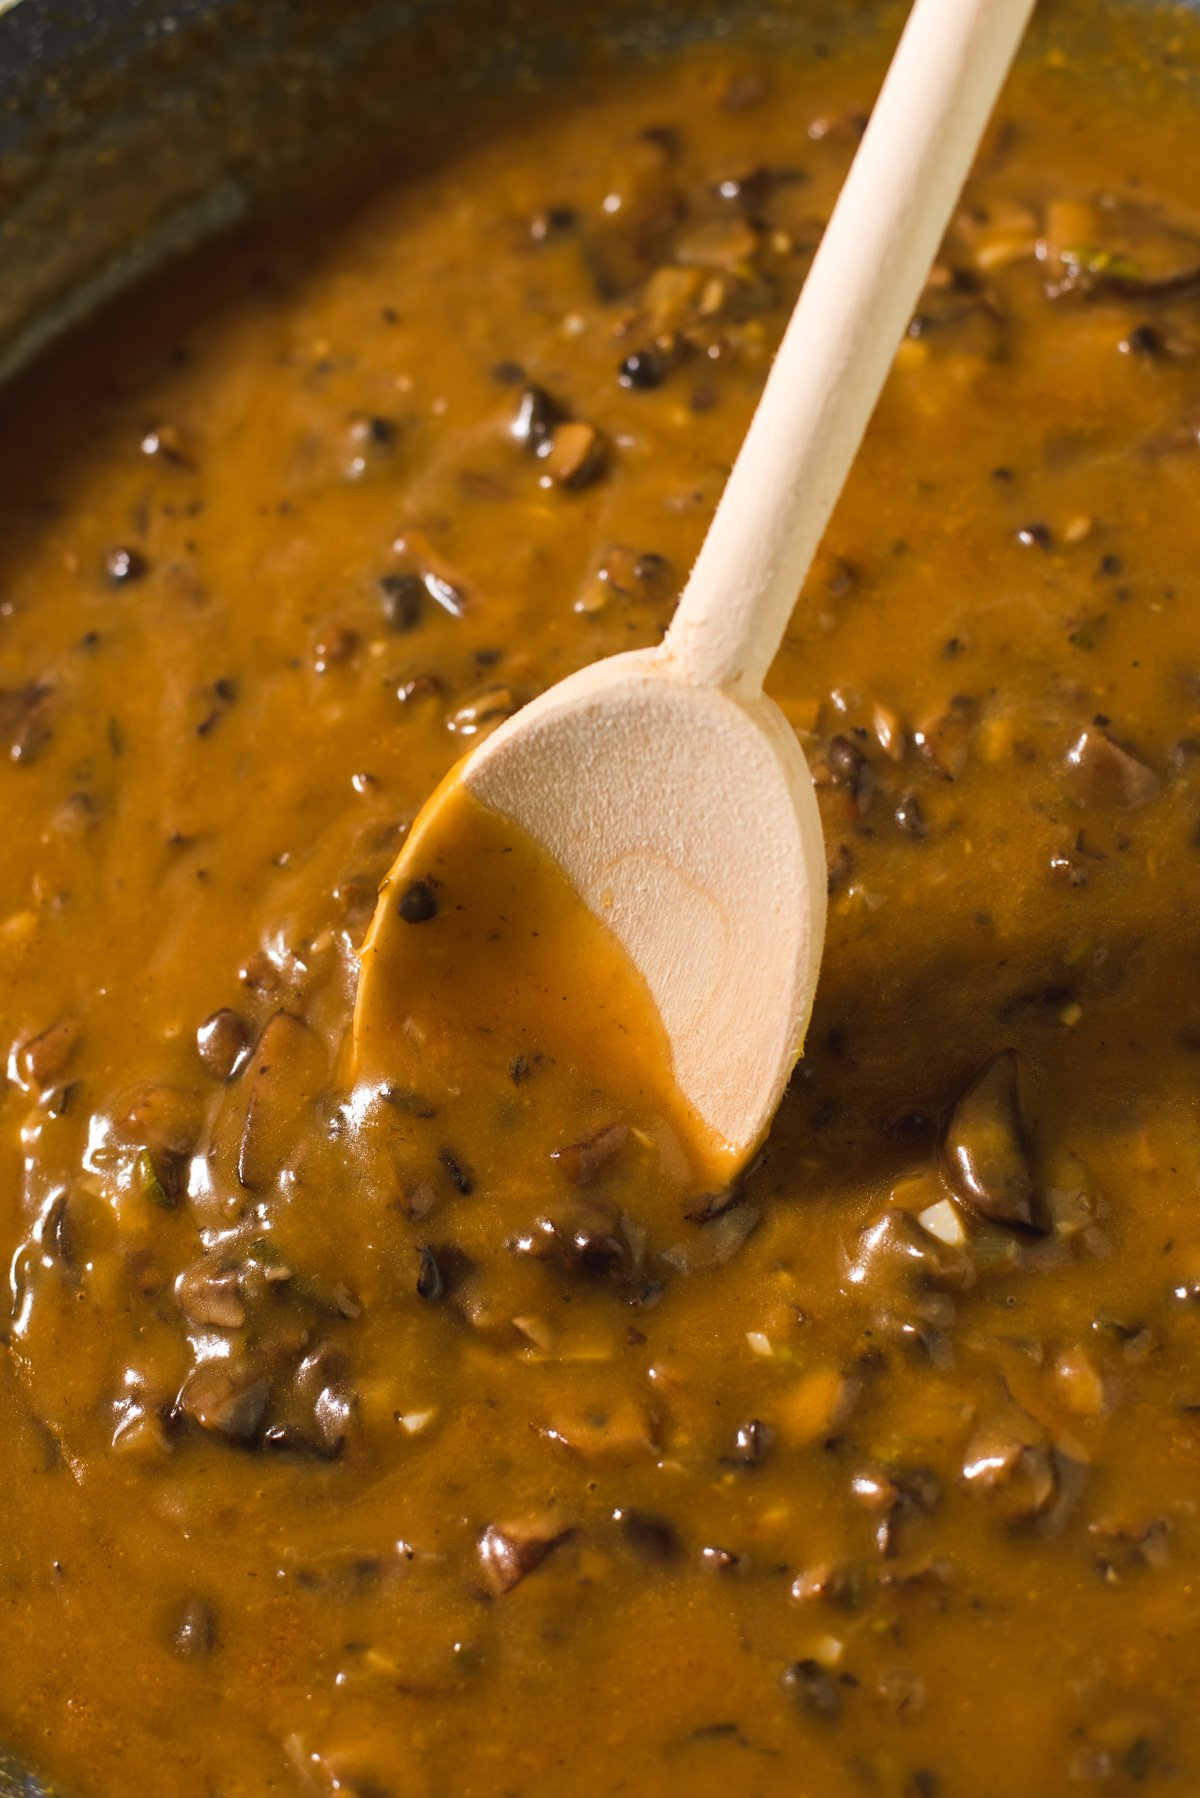 Close up of wooden spoon coated in gravy